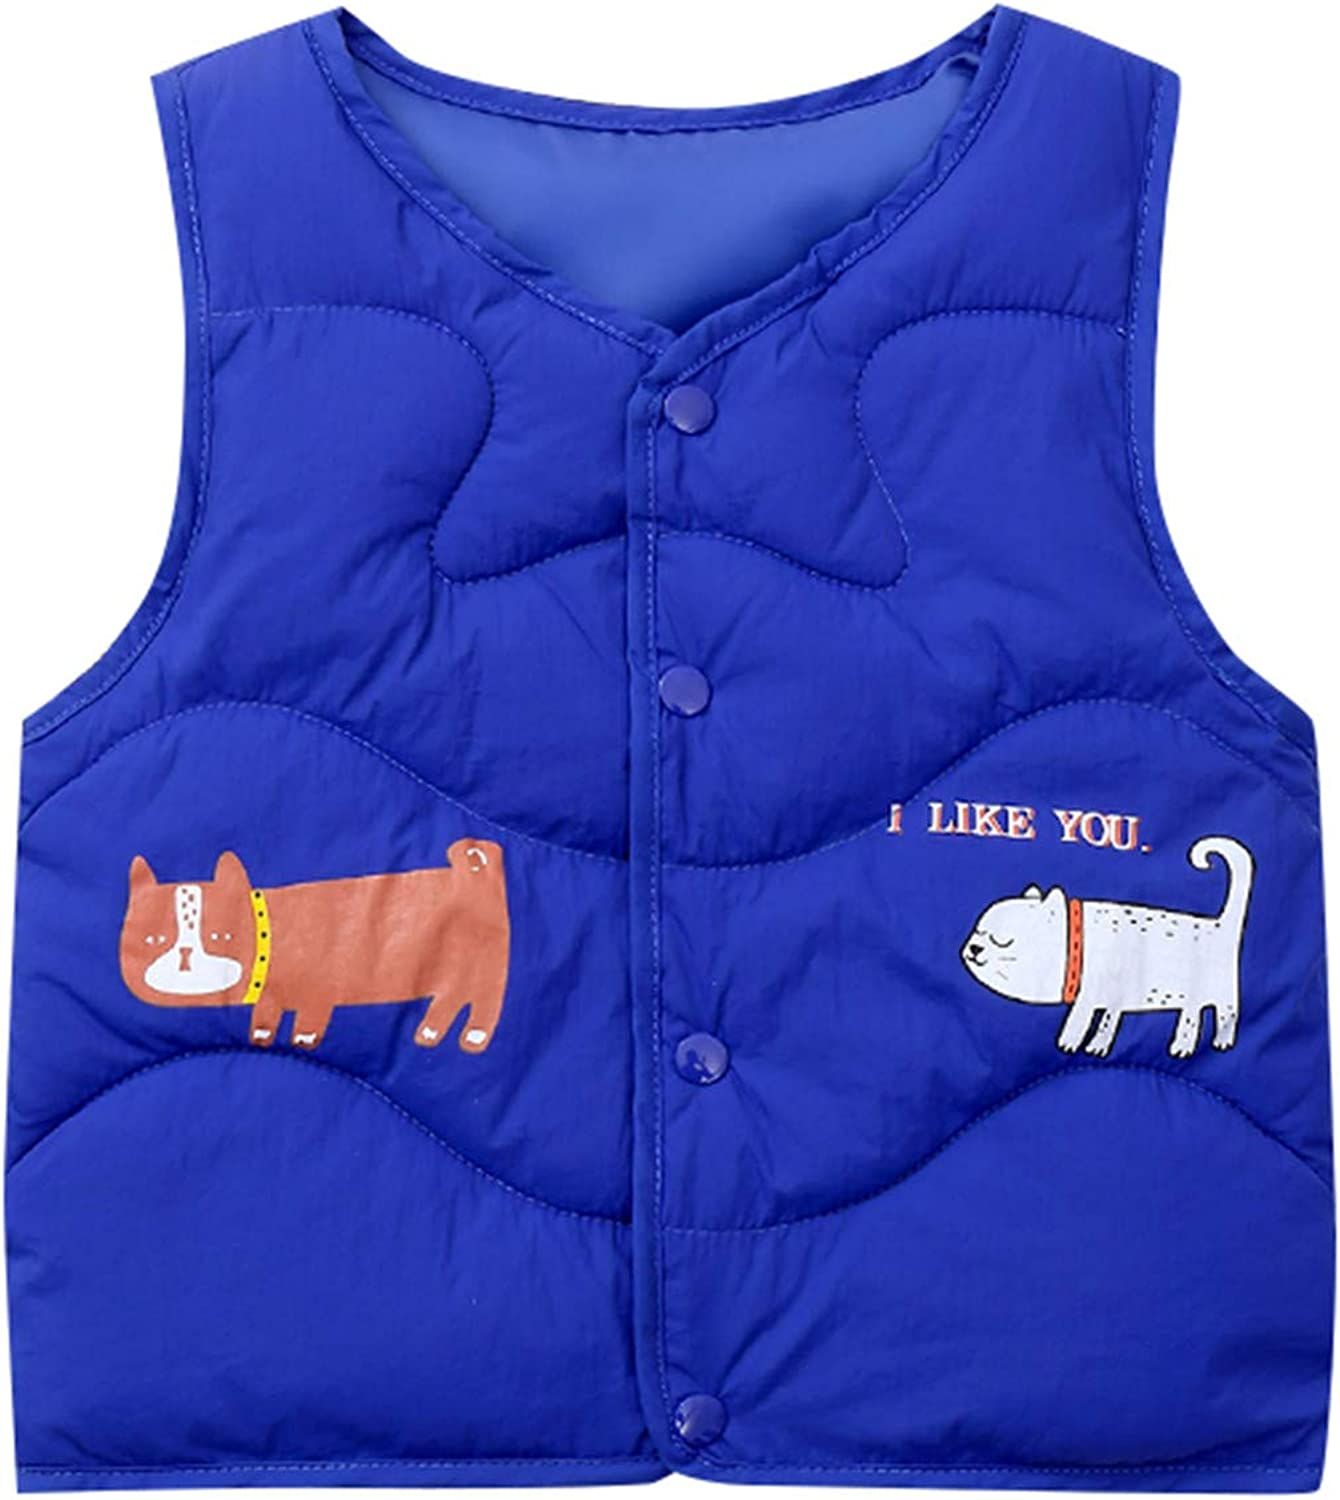 OrganicBoom 100/% Certified Organic Cotton Baby Quilted Jacquard Sleeveless Jacket Soft Vest